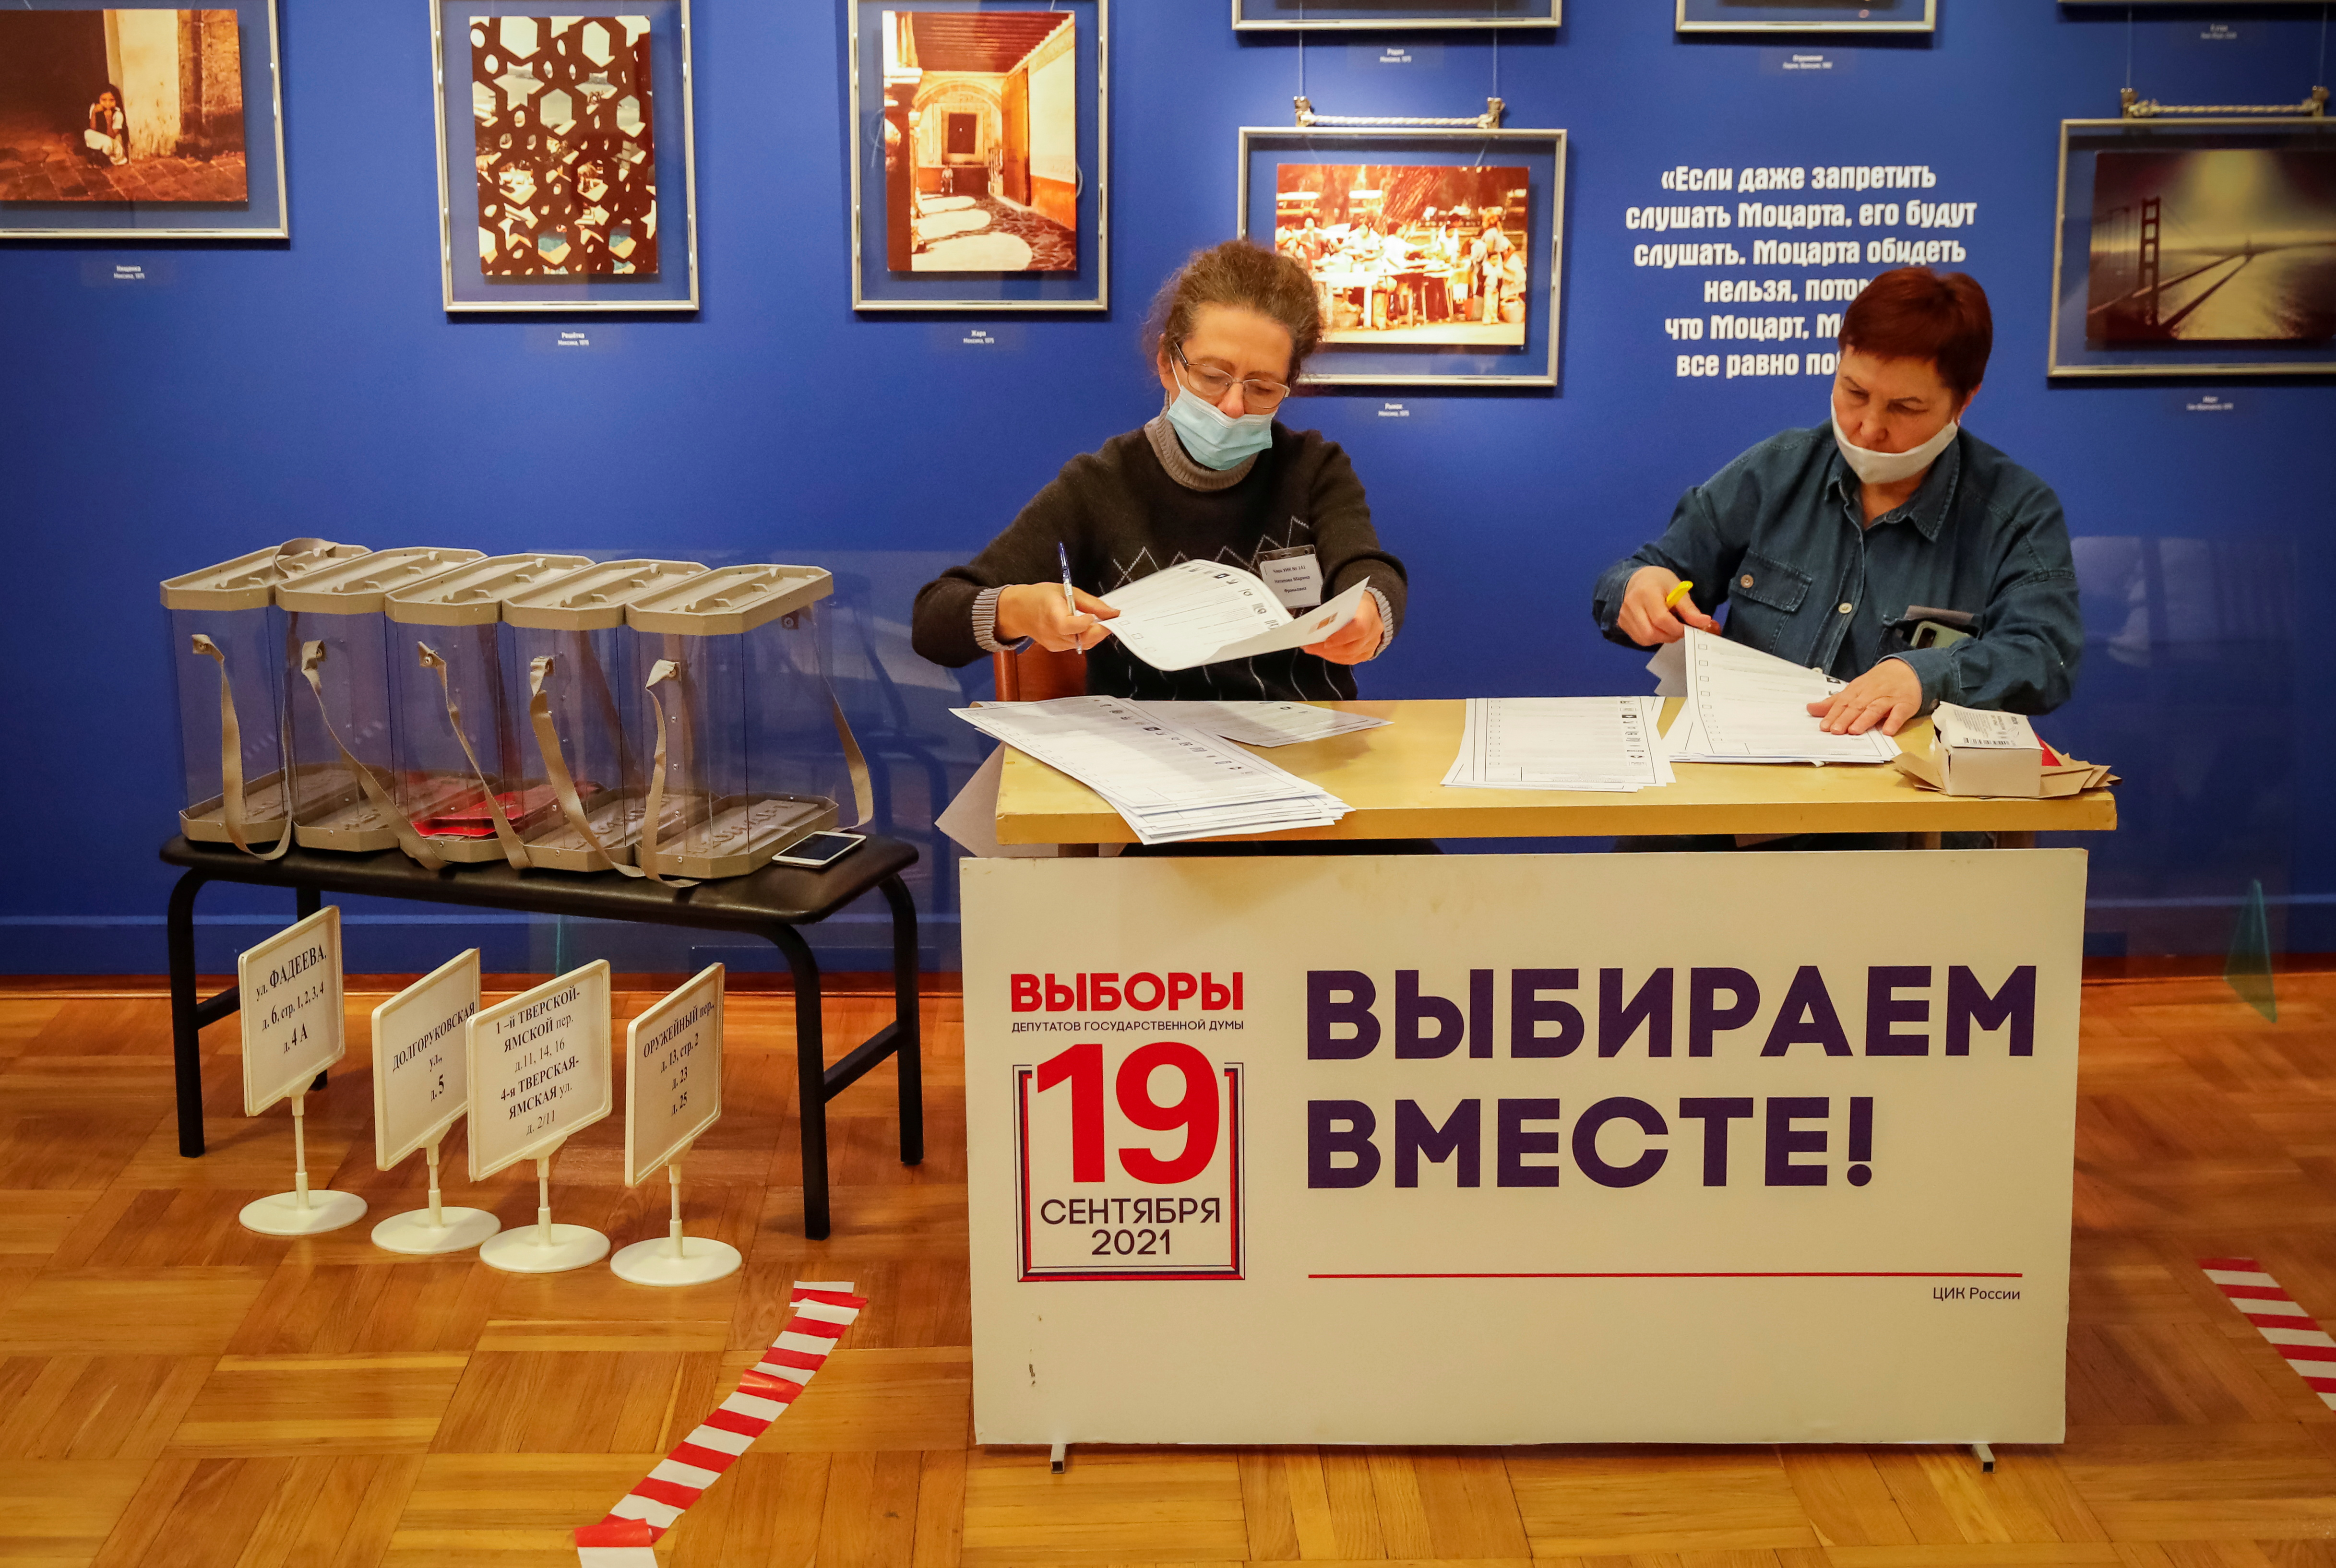 Members of a local election commission check ballots at a polling station ahead of a three-day parliamentary vote in Moscow, Russia September 16, 2021.  REUTERS/Shamil Zhumatov